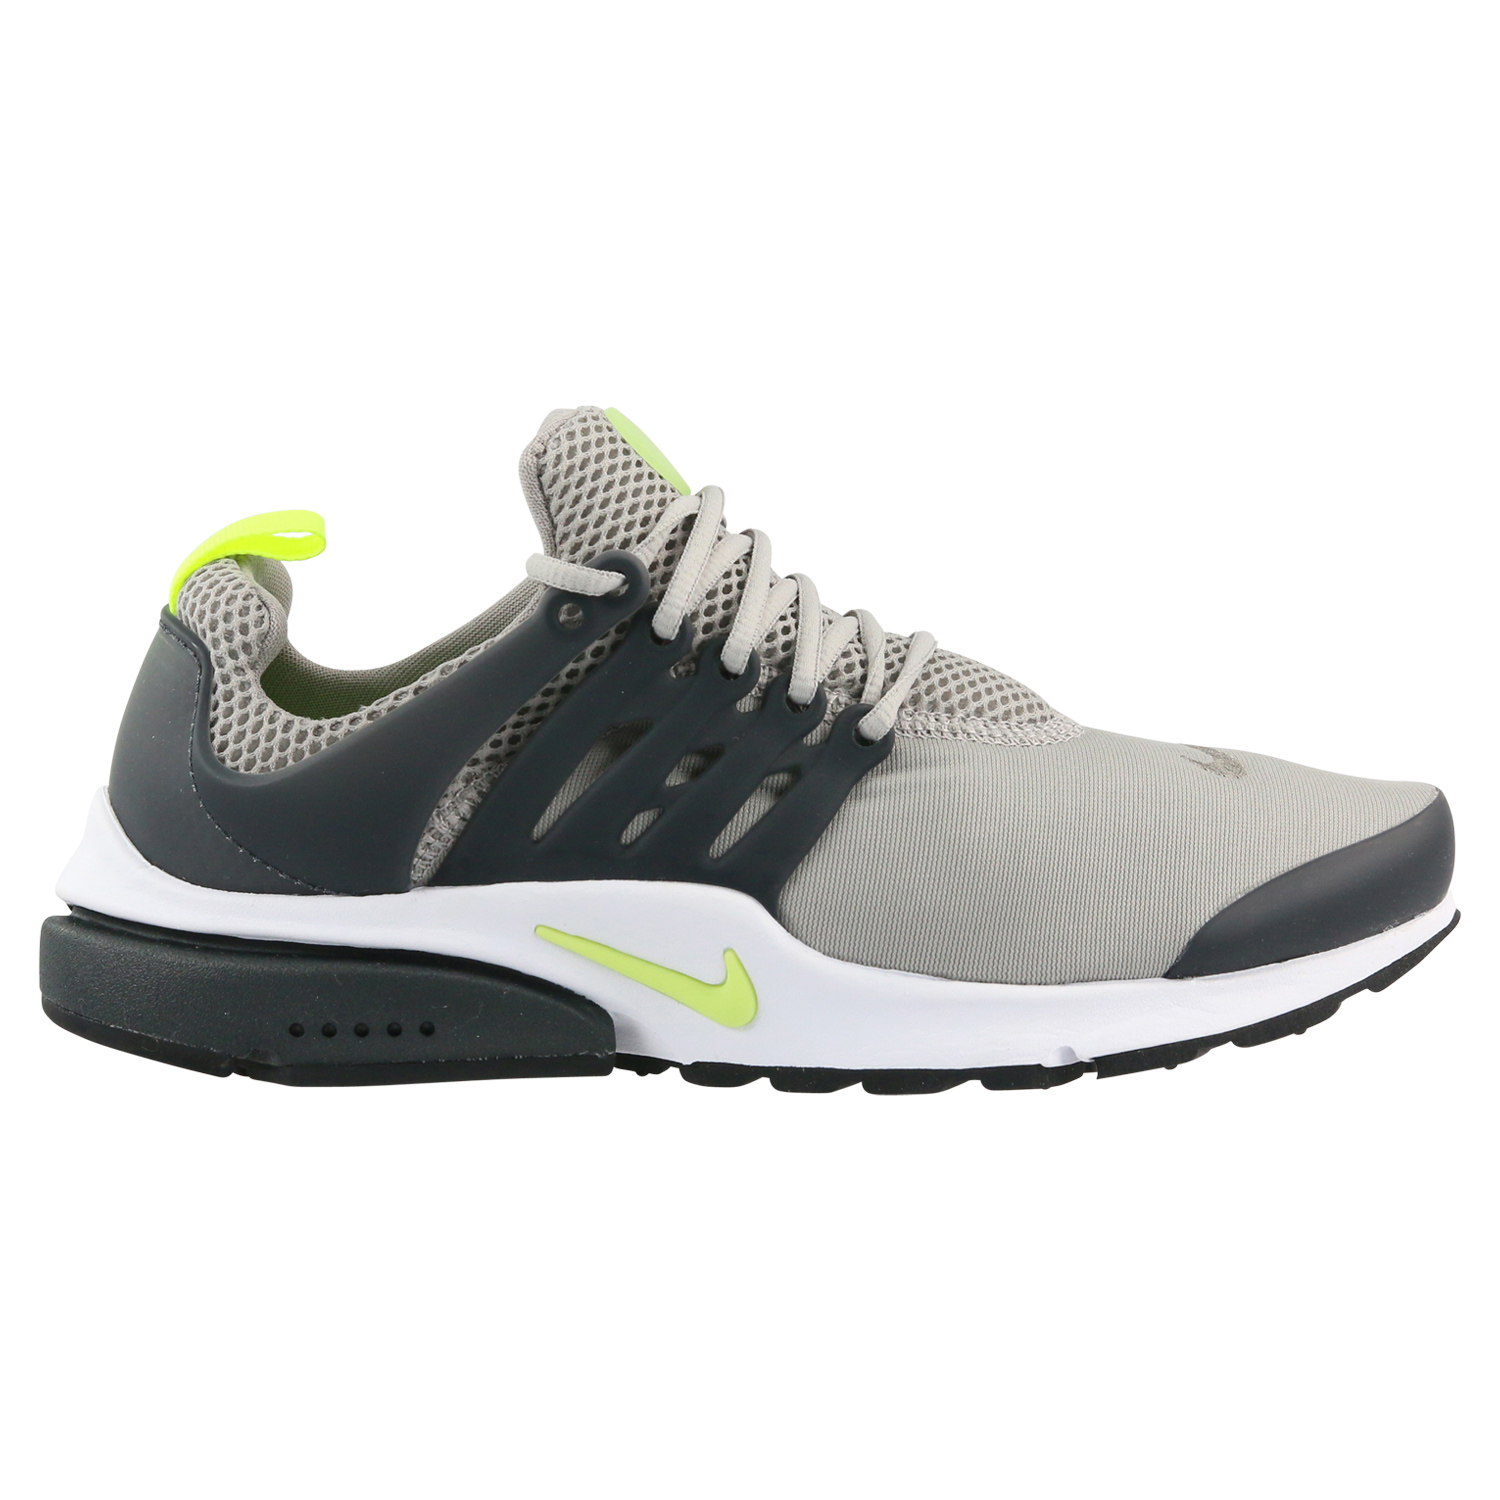 nike air presto schuhe turnschuhe sneaker herren ebay. Black Bedroom Furniture Sets. Home Design Ideas